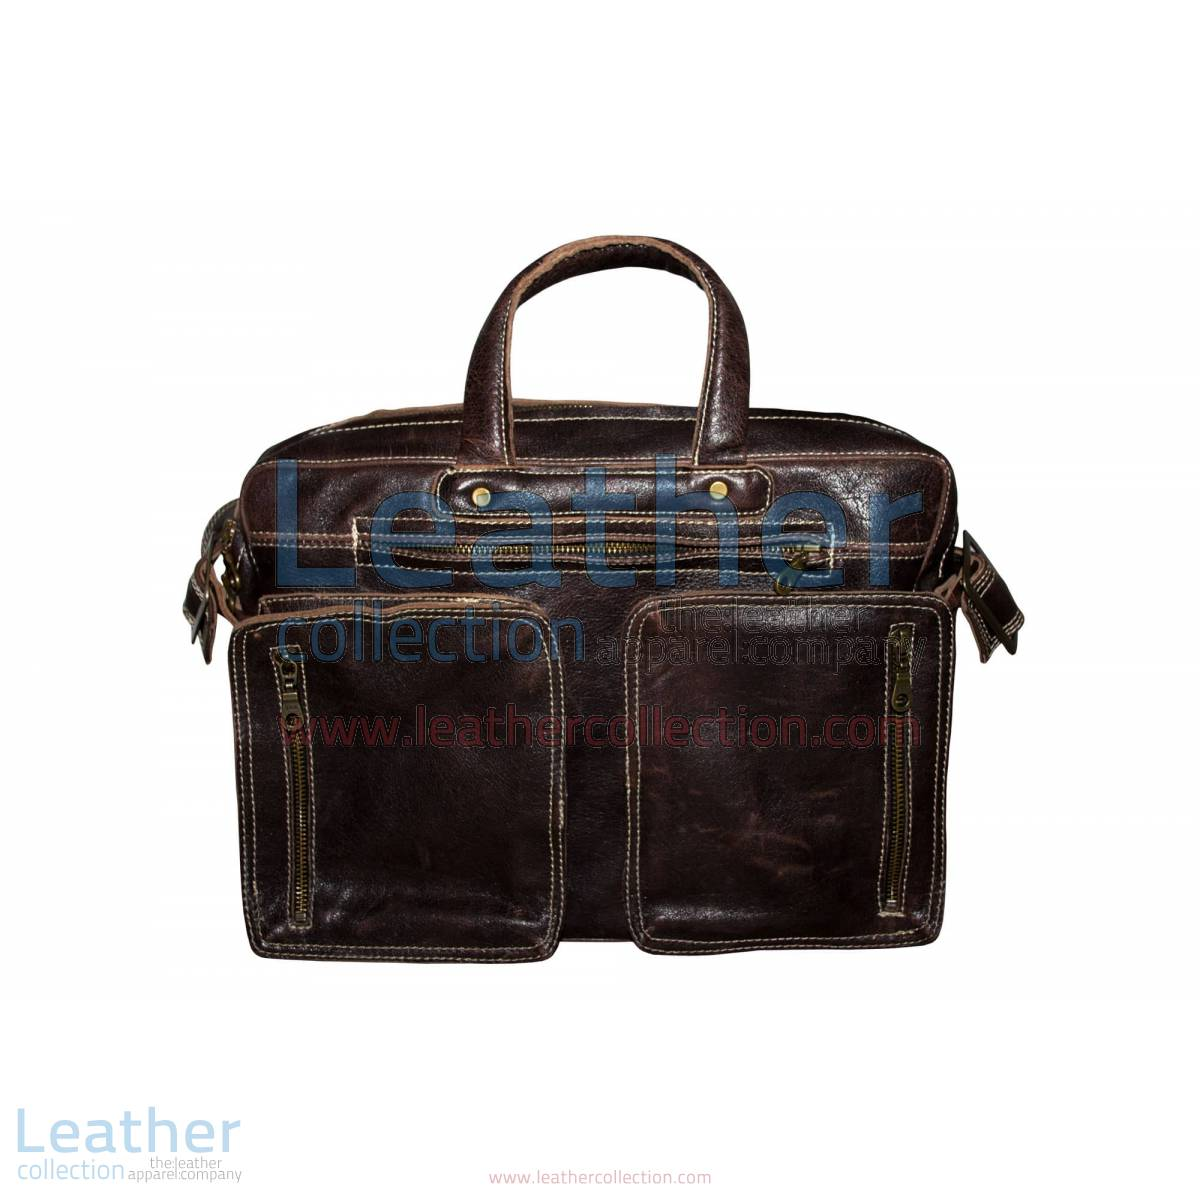 Retro Leather Laptop Bag | leather laptop bag,retro laptop bag